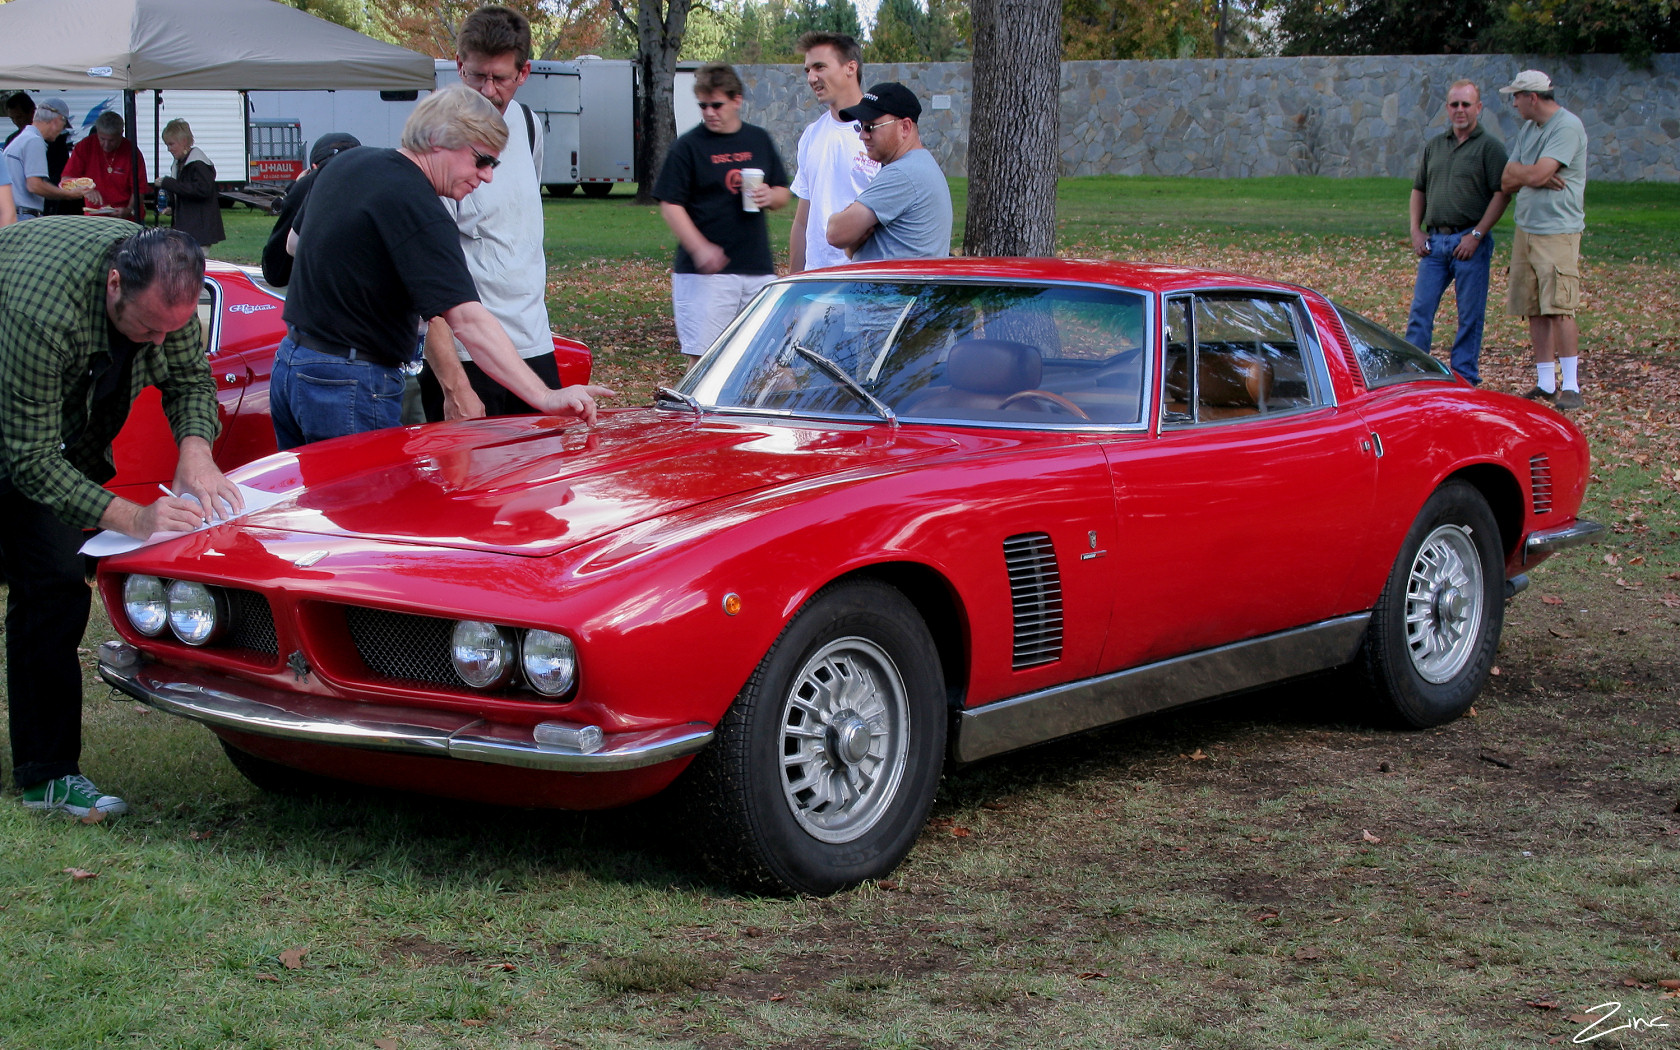 file1969 iso grifo a3l red fvl 4637144261jpg